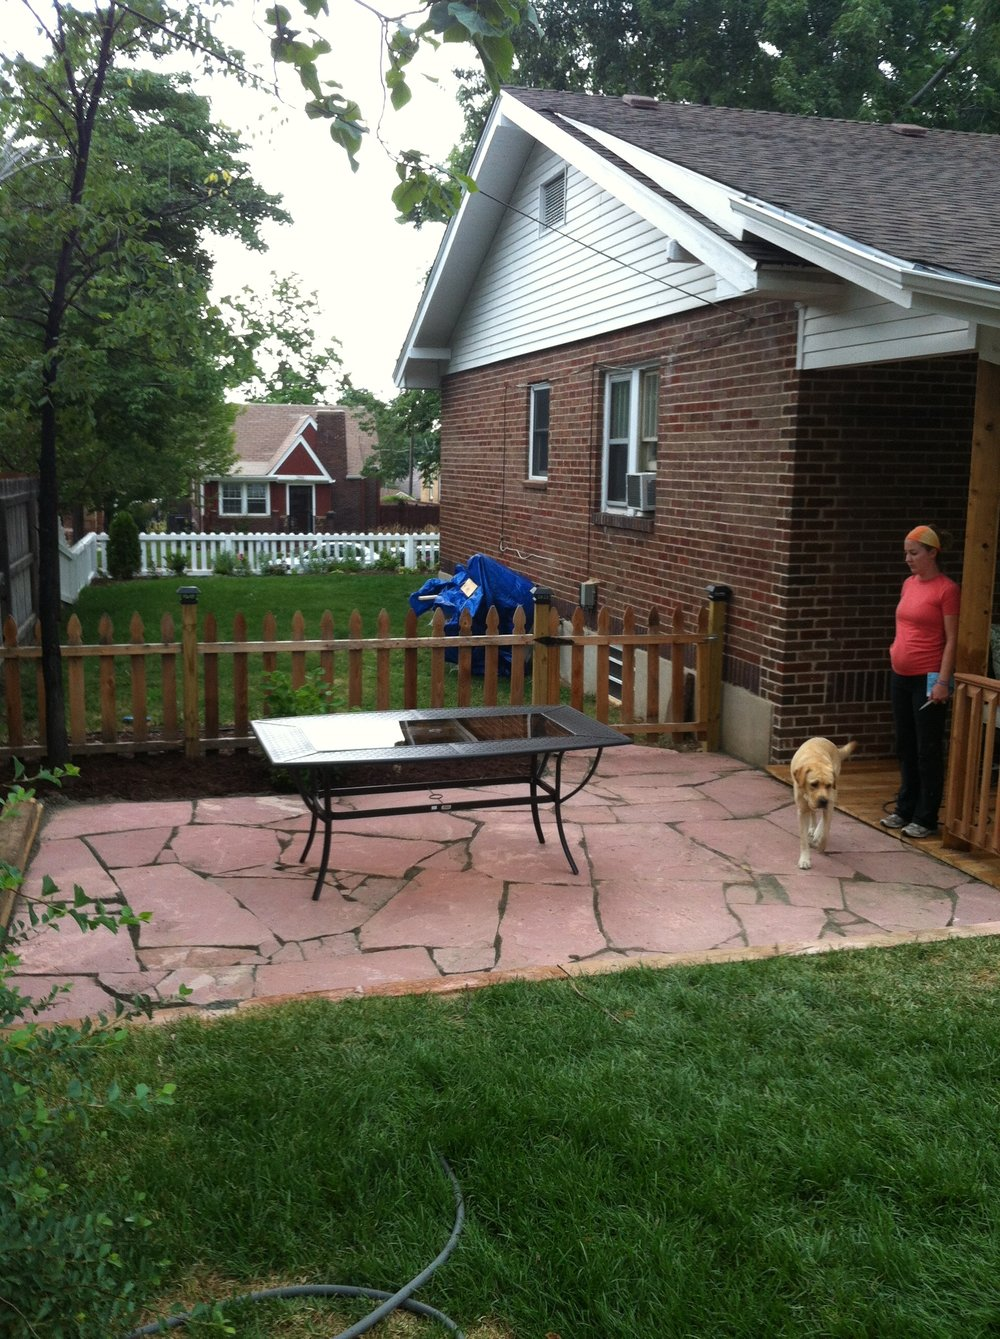 New fence and patio